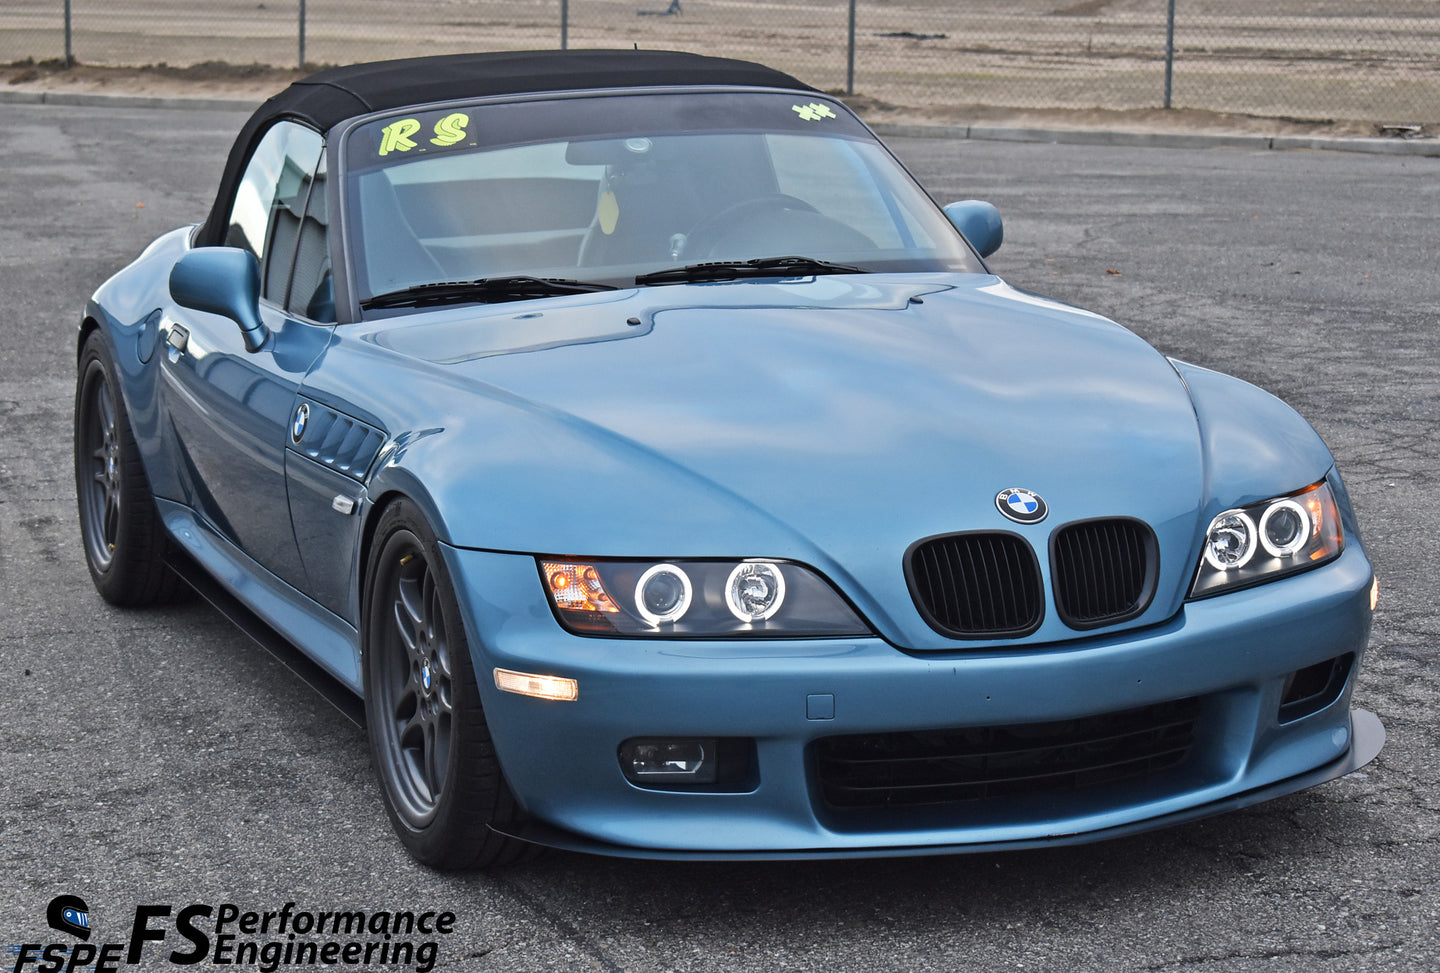 BMW Z3 (1995-2002) Collections Page - Aerodynamics Body Kit, splitter, side skirts, diffuser, canards, wing, spoiler.